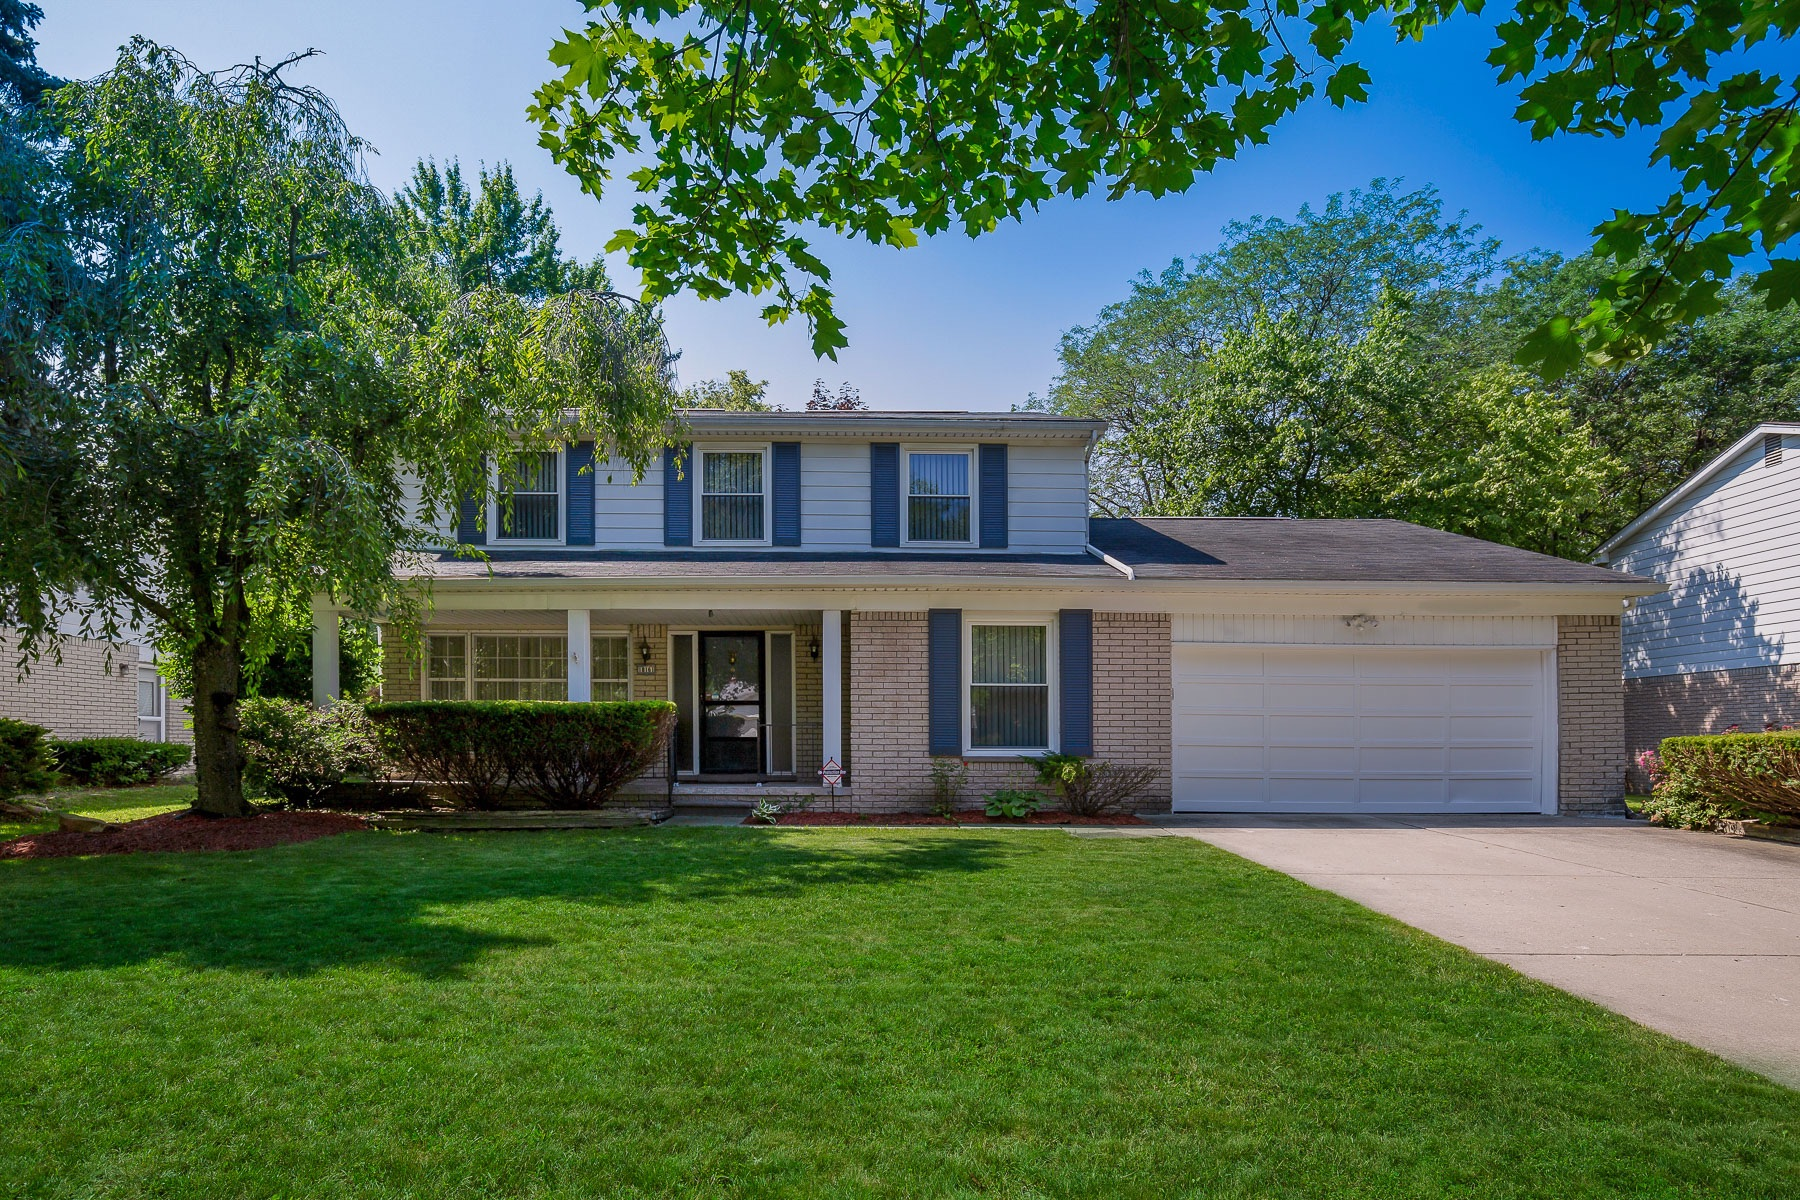 Single Family Homes for Sale at Lathrup Village 18161 Ramsgate Dr Lathrup Village, Michigan 48076 United States